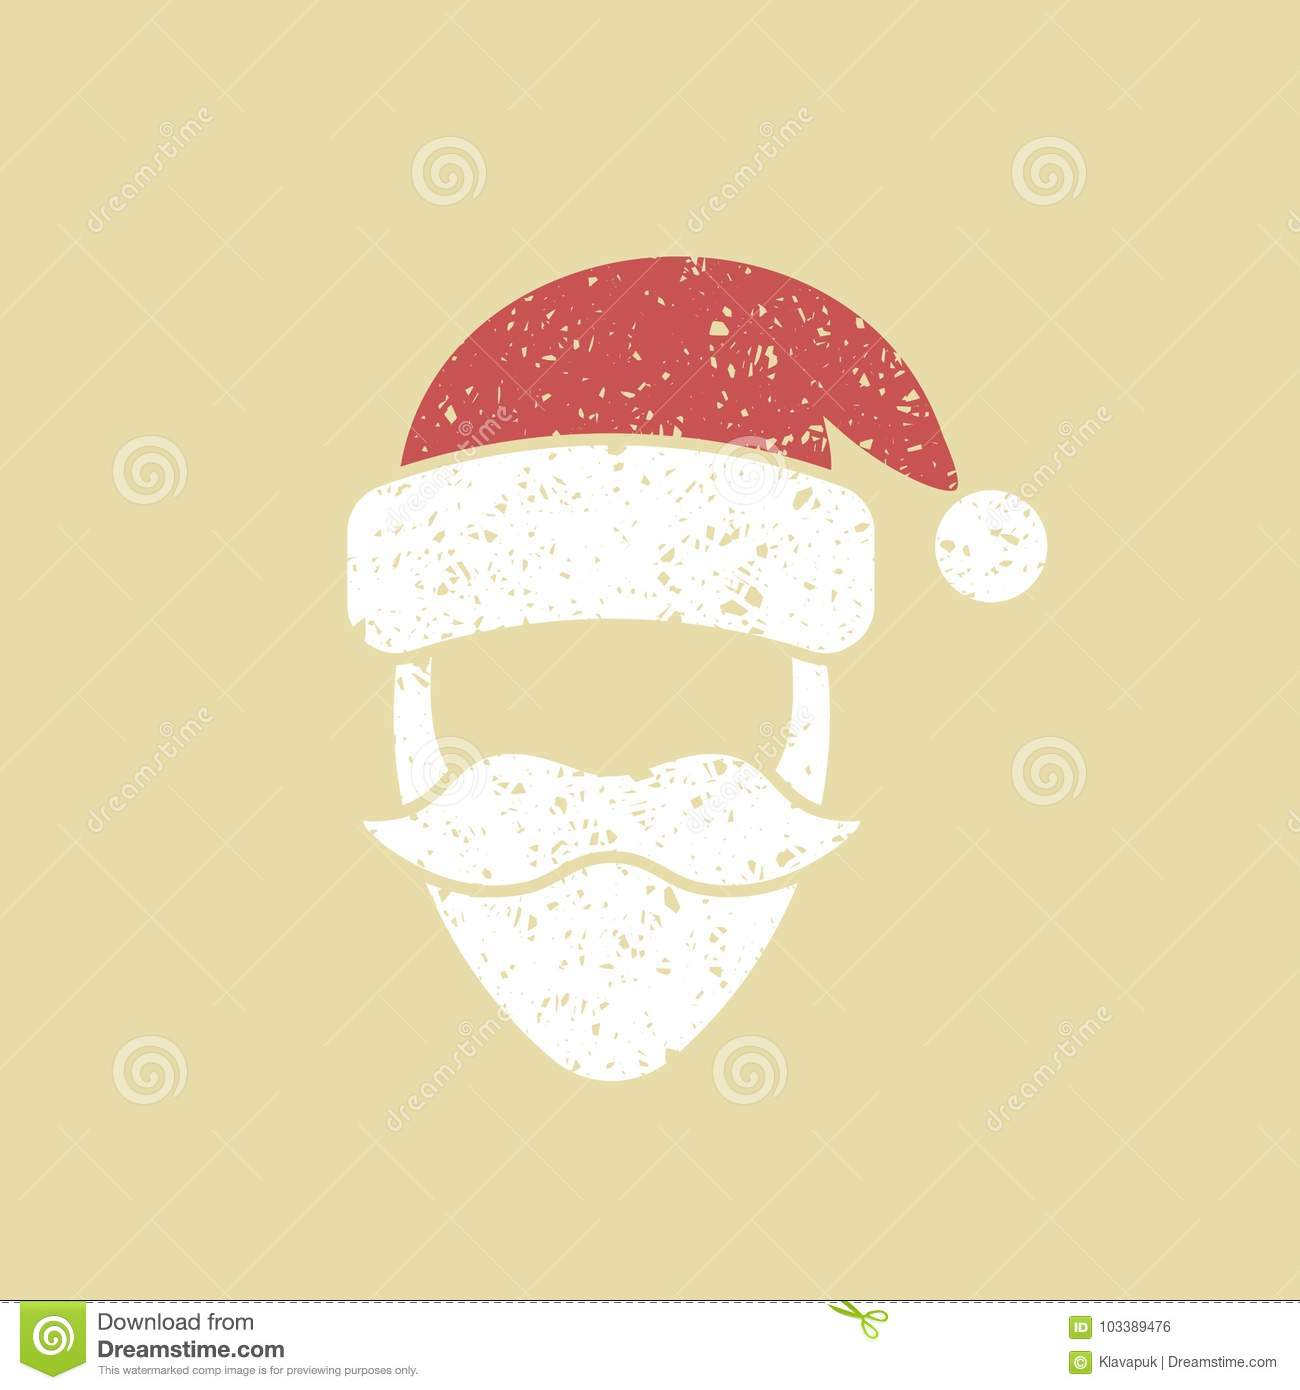 Santa Claus Face Icon Stock Vector Illustration Of Human 103389476